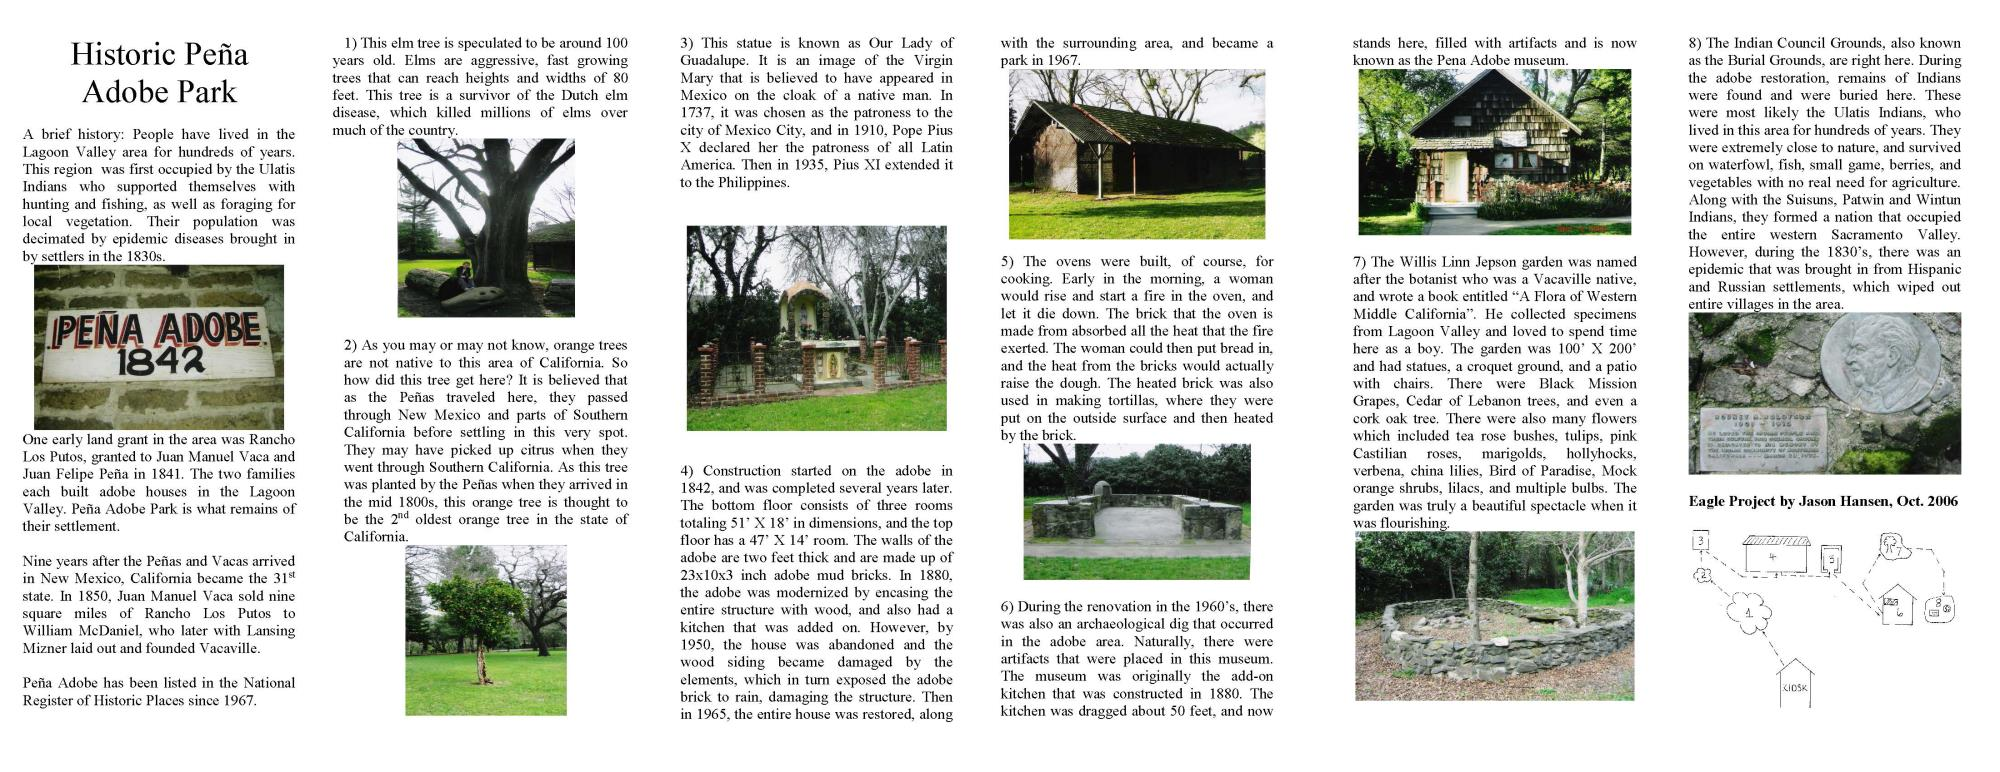 Brochure outlining the history of Pena Adobe Park